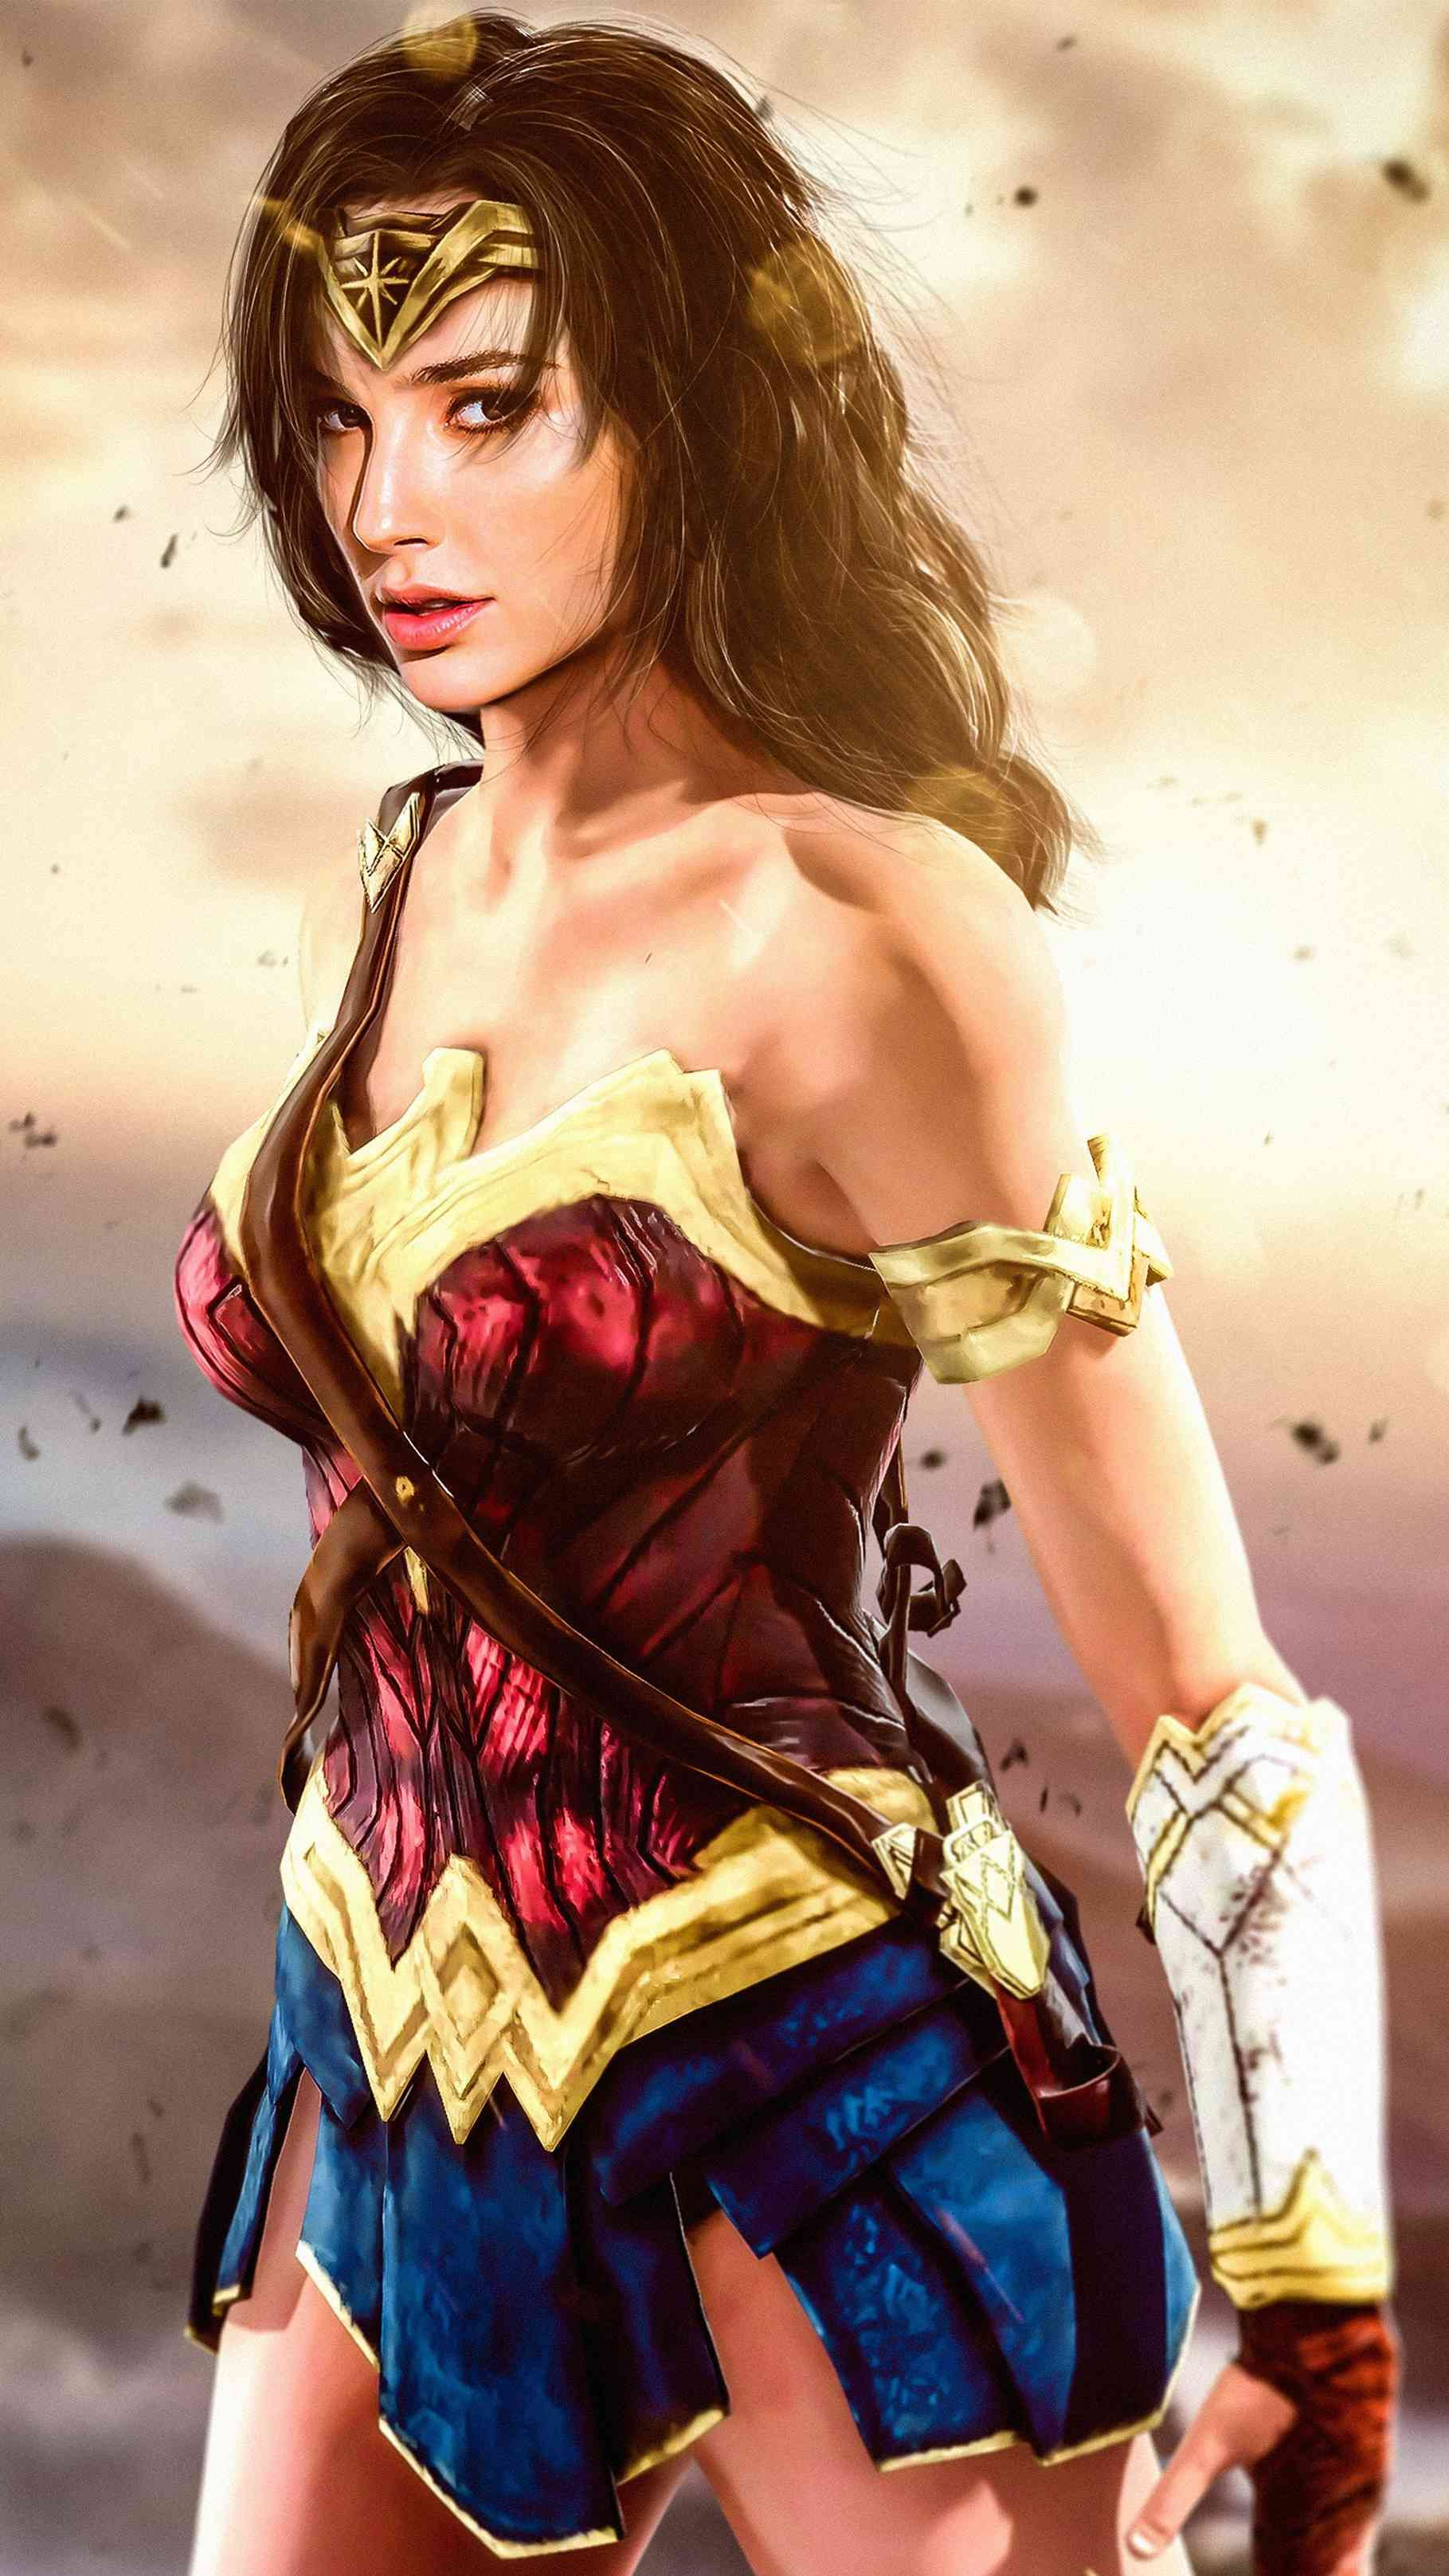 Wonder Woman Hd Wallpaper Wonder Woman Art Wonder Woman Gal Gadot Wonder Woman